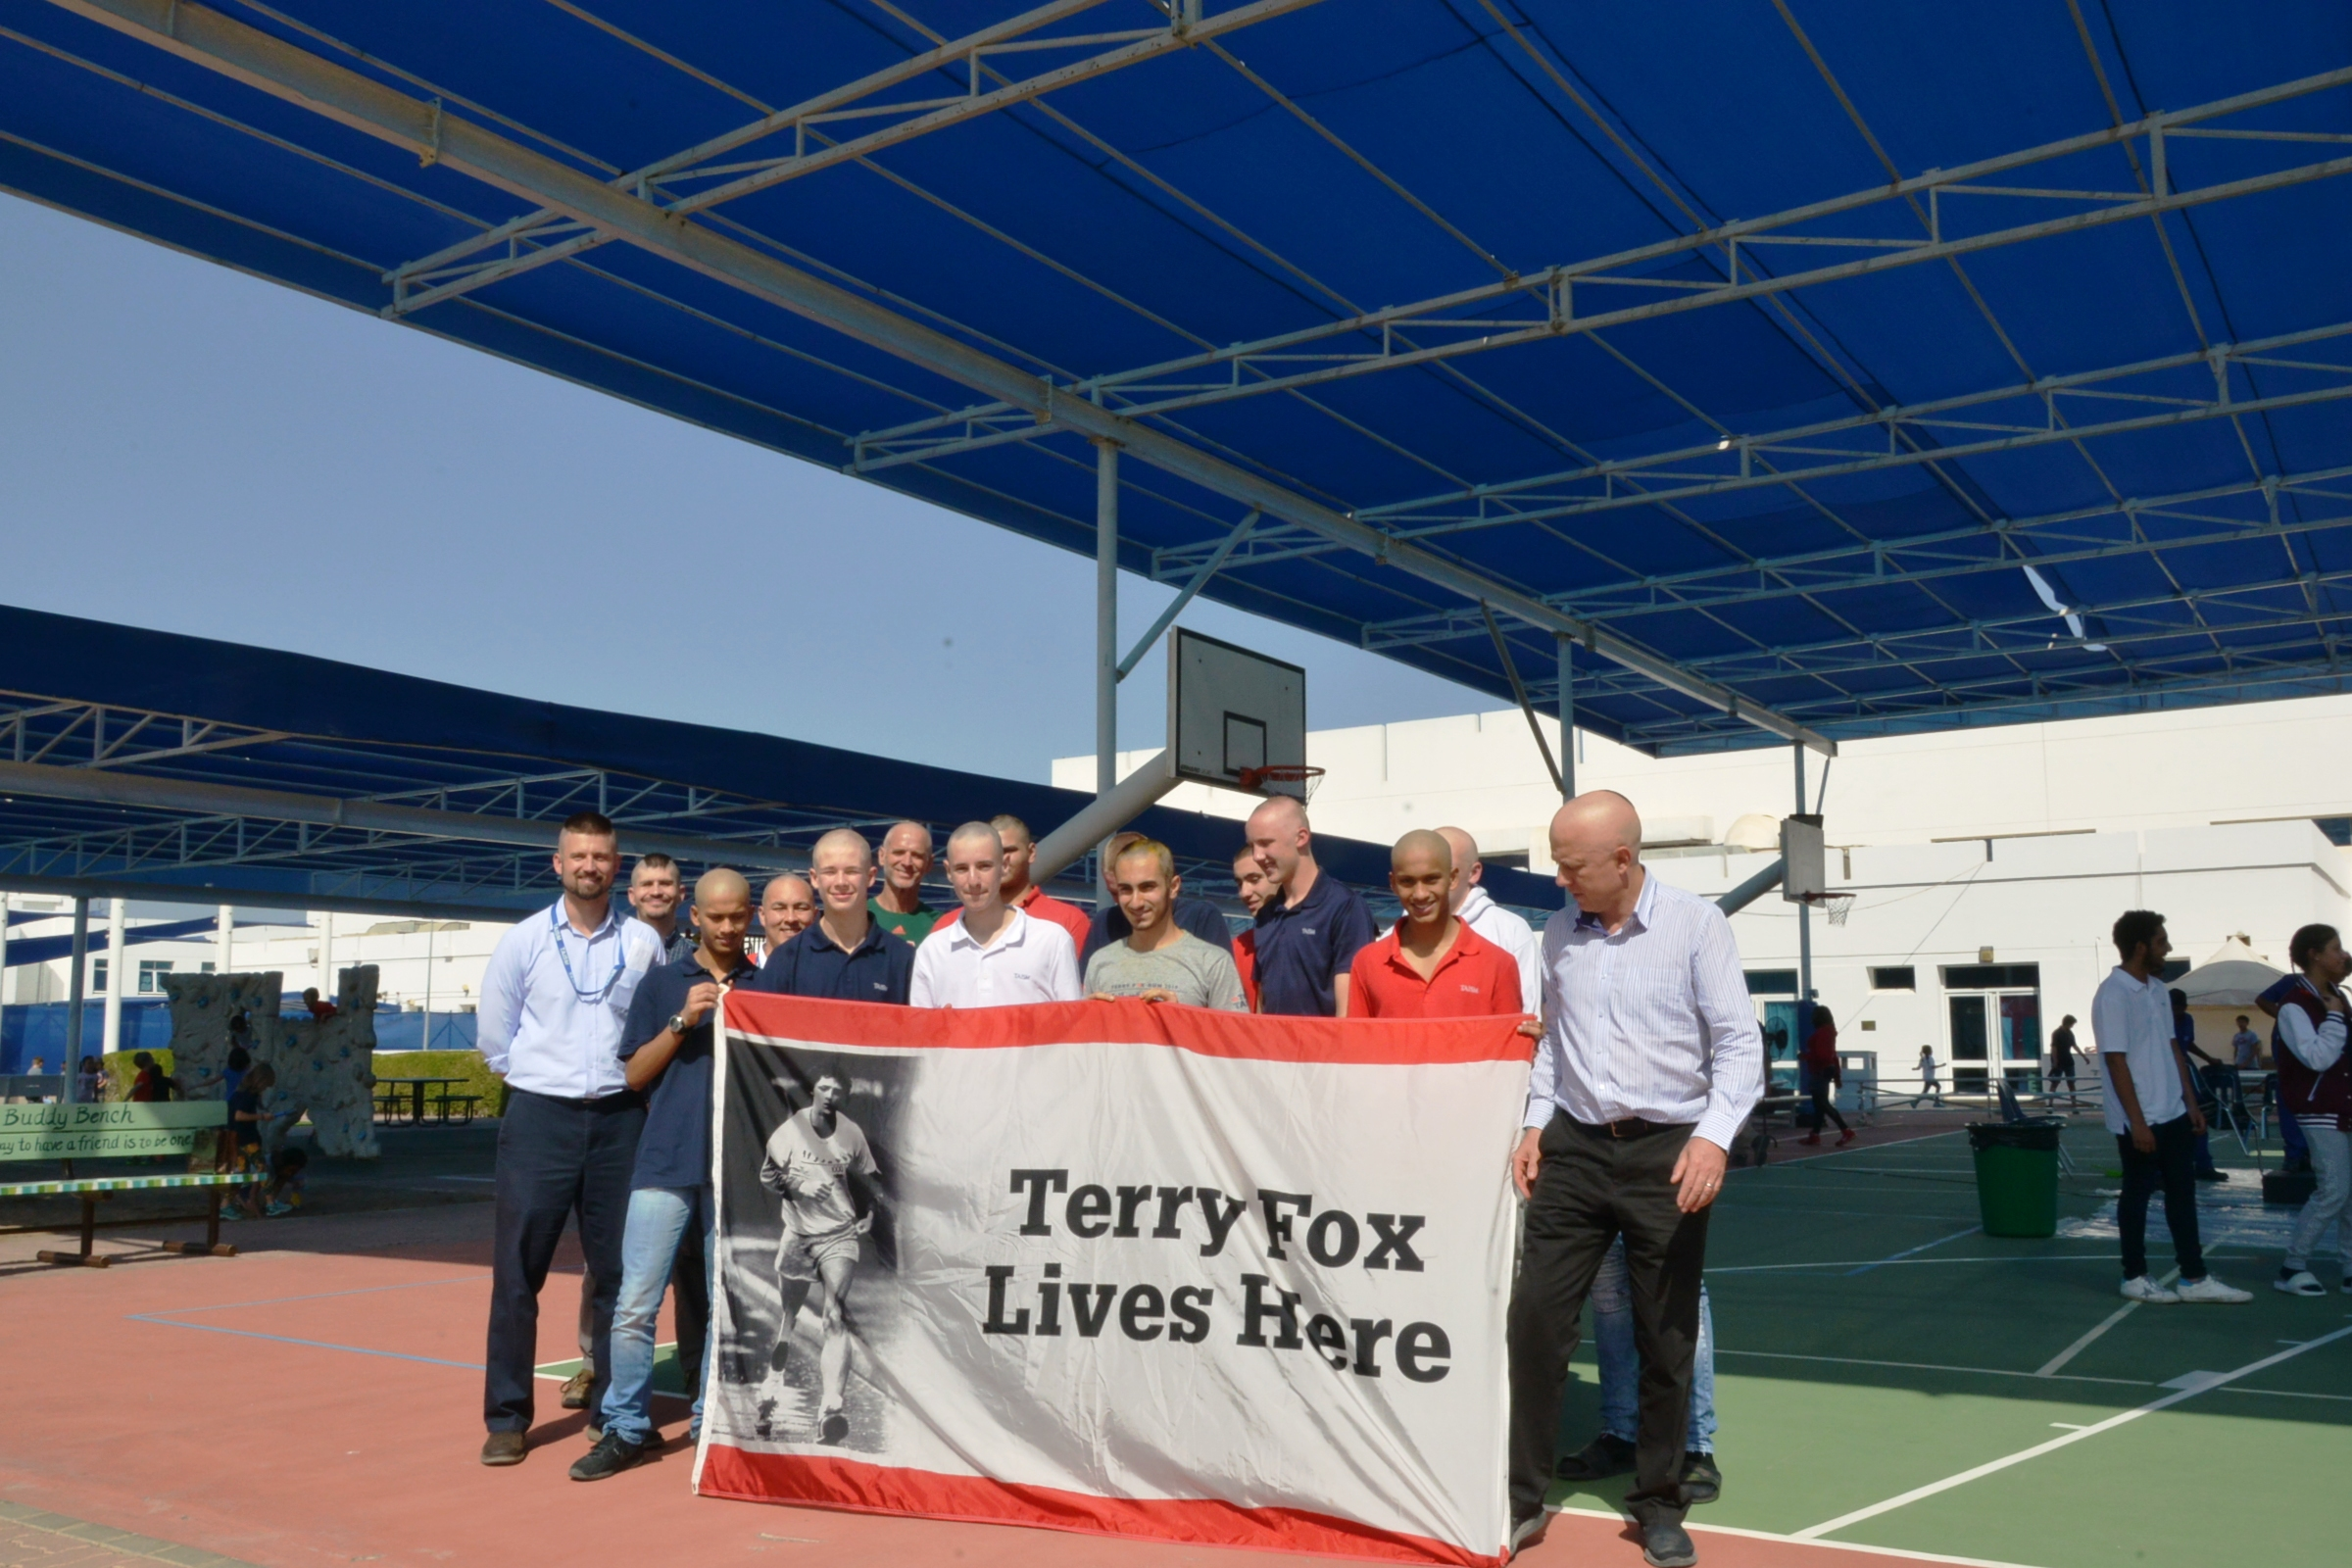 Terry Fox Run raises OMR4,000 for cancer research